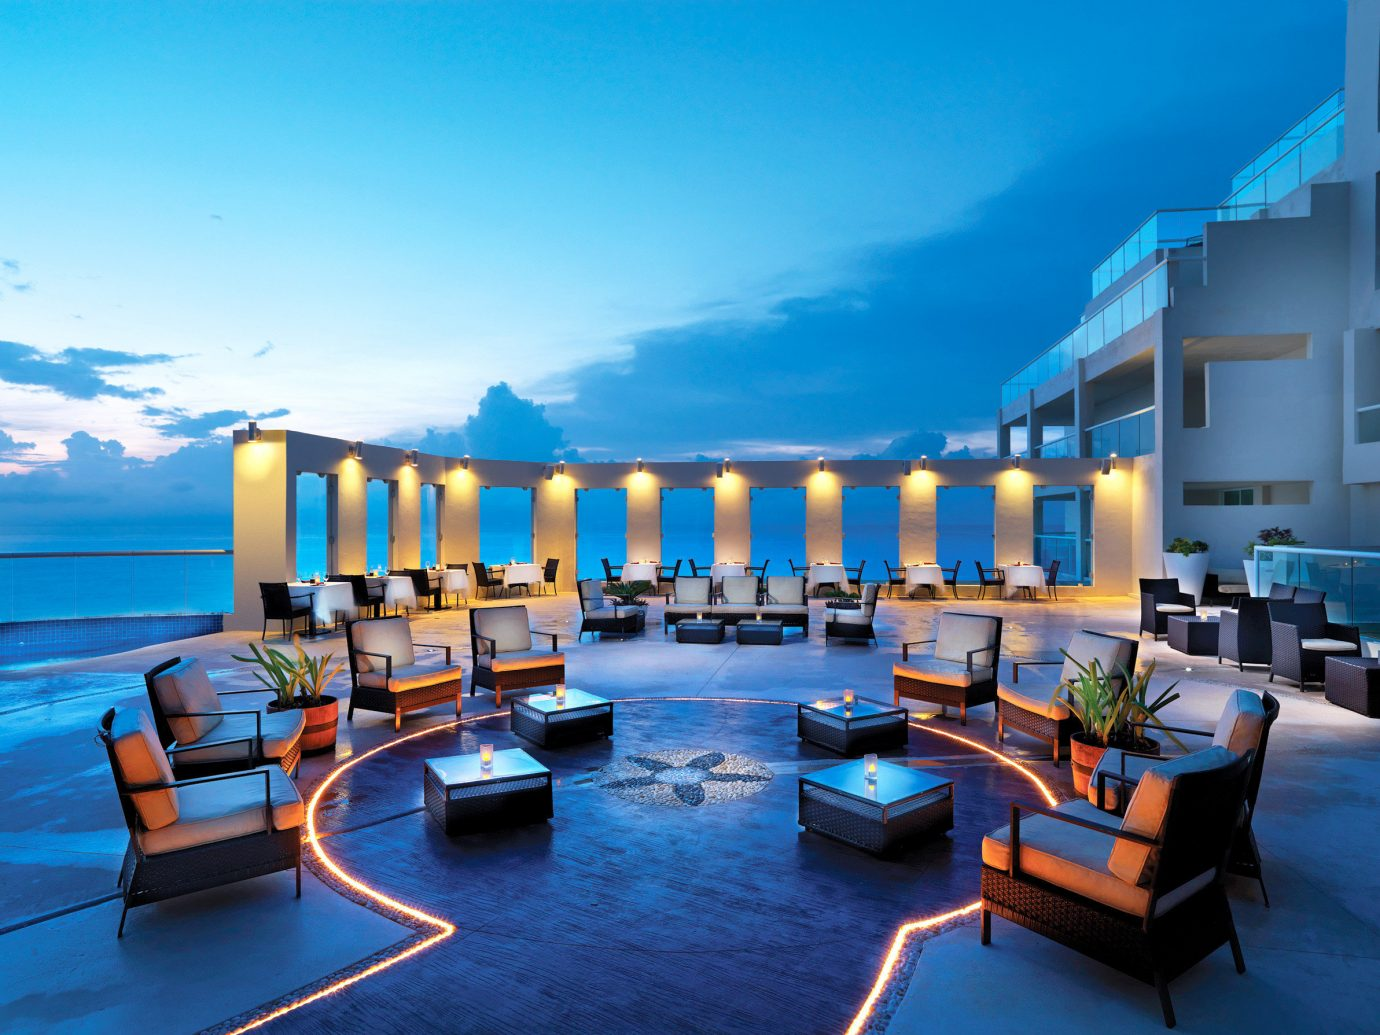 Adult-only Bar Beachfront Drink Eat Hotels Nightlife Ocean Romantic sky water scene leisure property Resort condominium estate house vacation swimming pool marina interior design dock Villa apartment Harbor caribbean furniture several